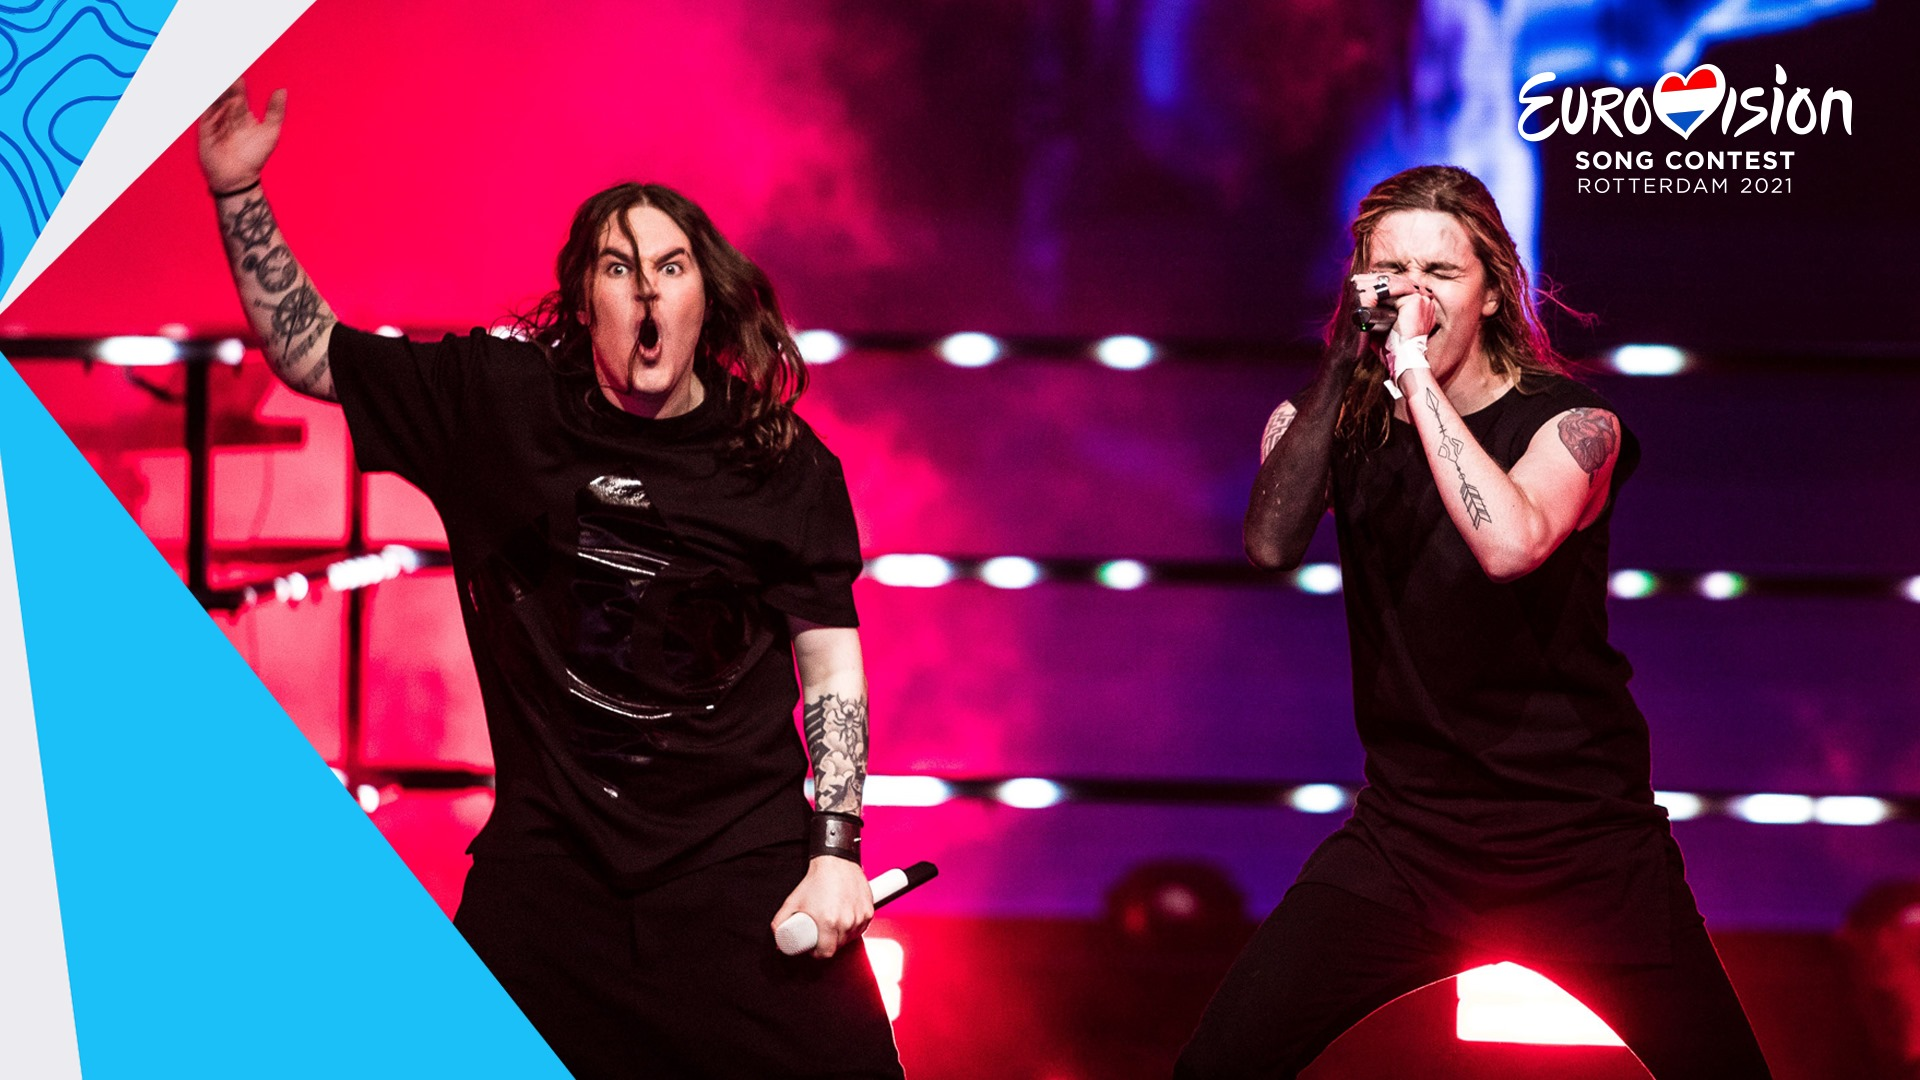 The Blind Channel will represent Finland at Eurovision 2021